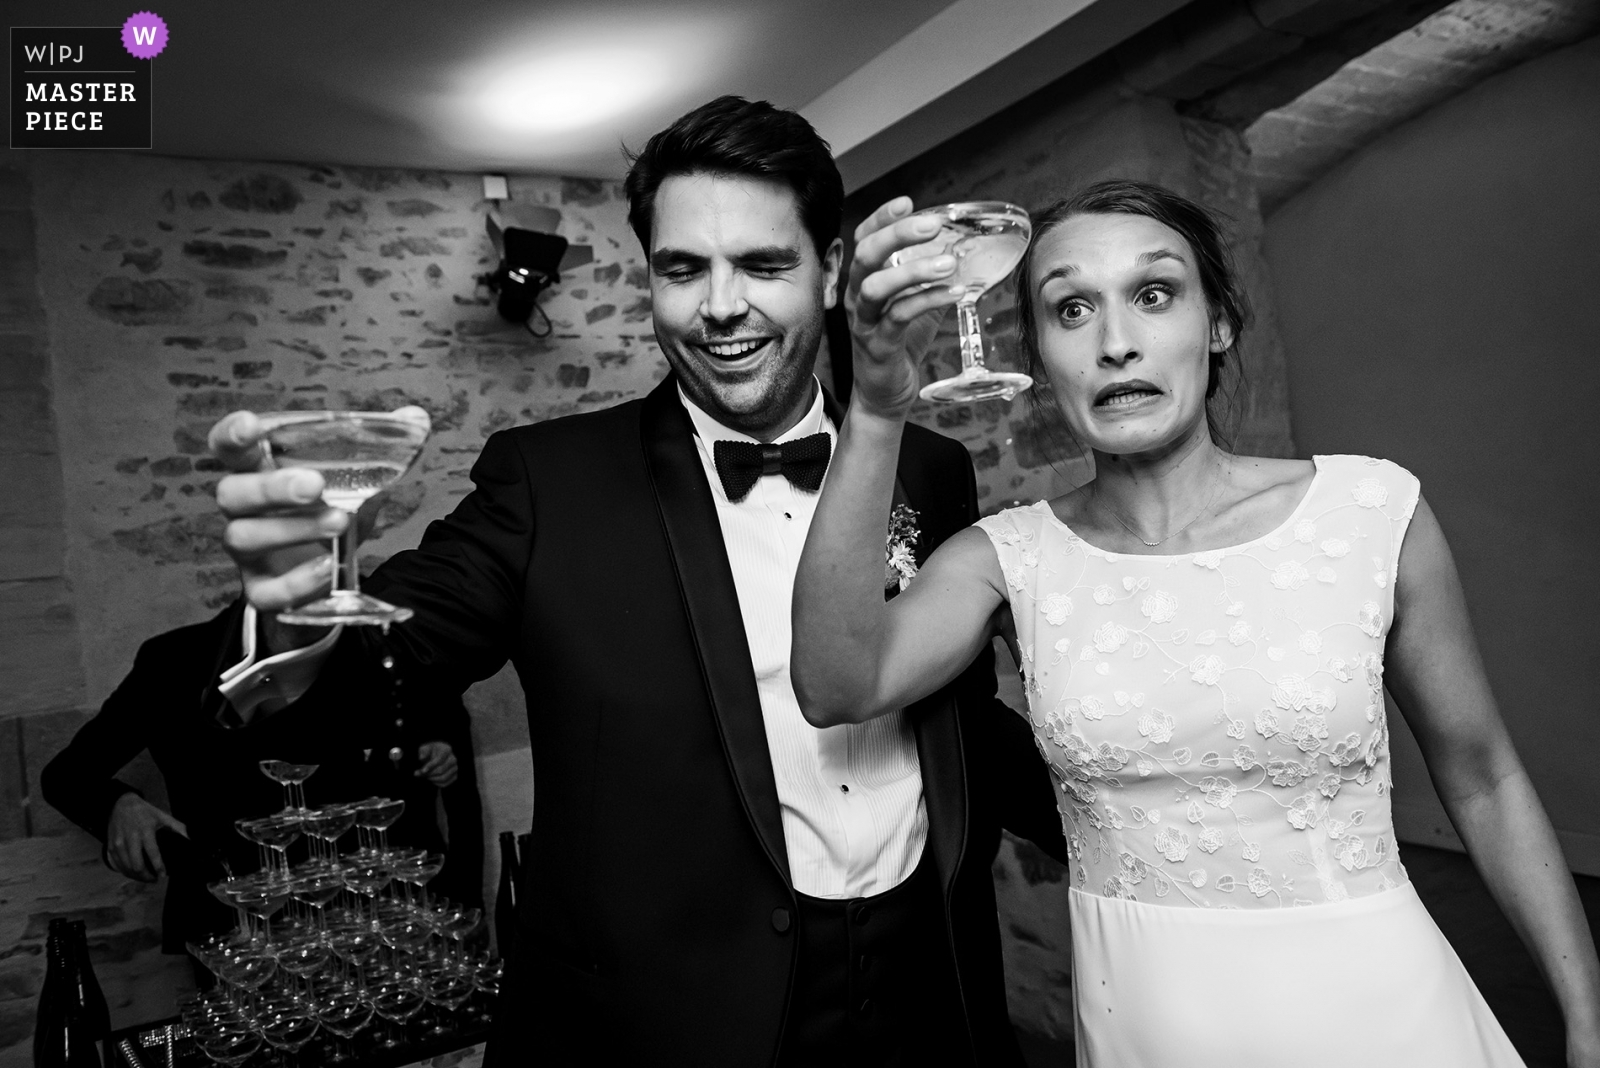 CHAMPAGNE MOMENT - Vertou, Nantes Wedding Photography -  | CHATEAU DE VAIR, NEAR ANCENIS, LOIRE VALLEY